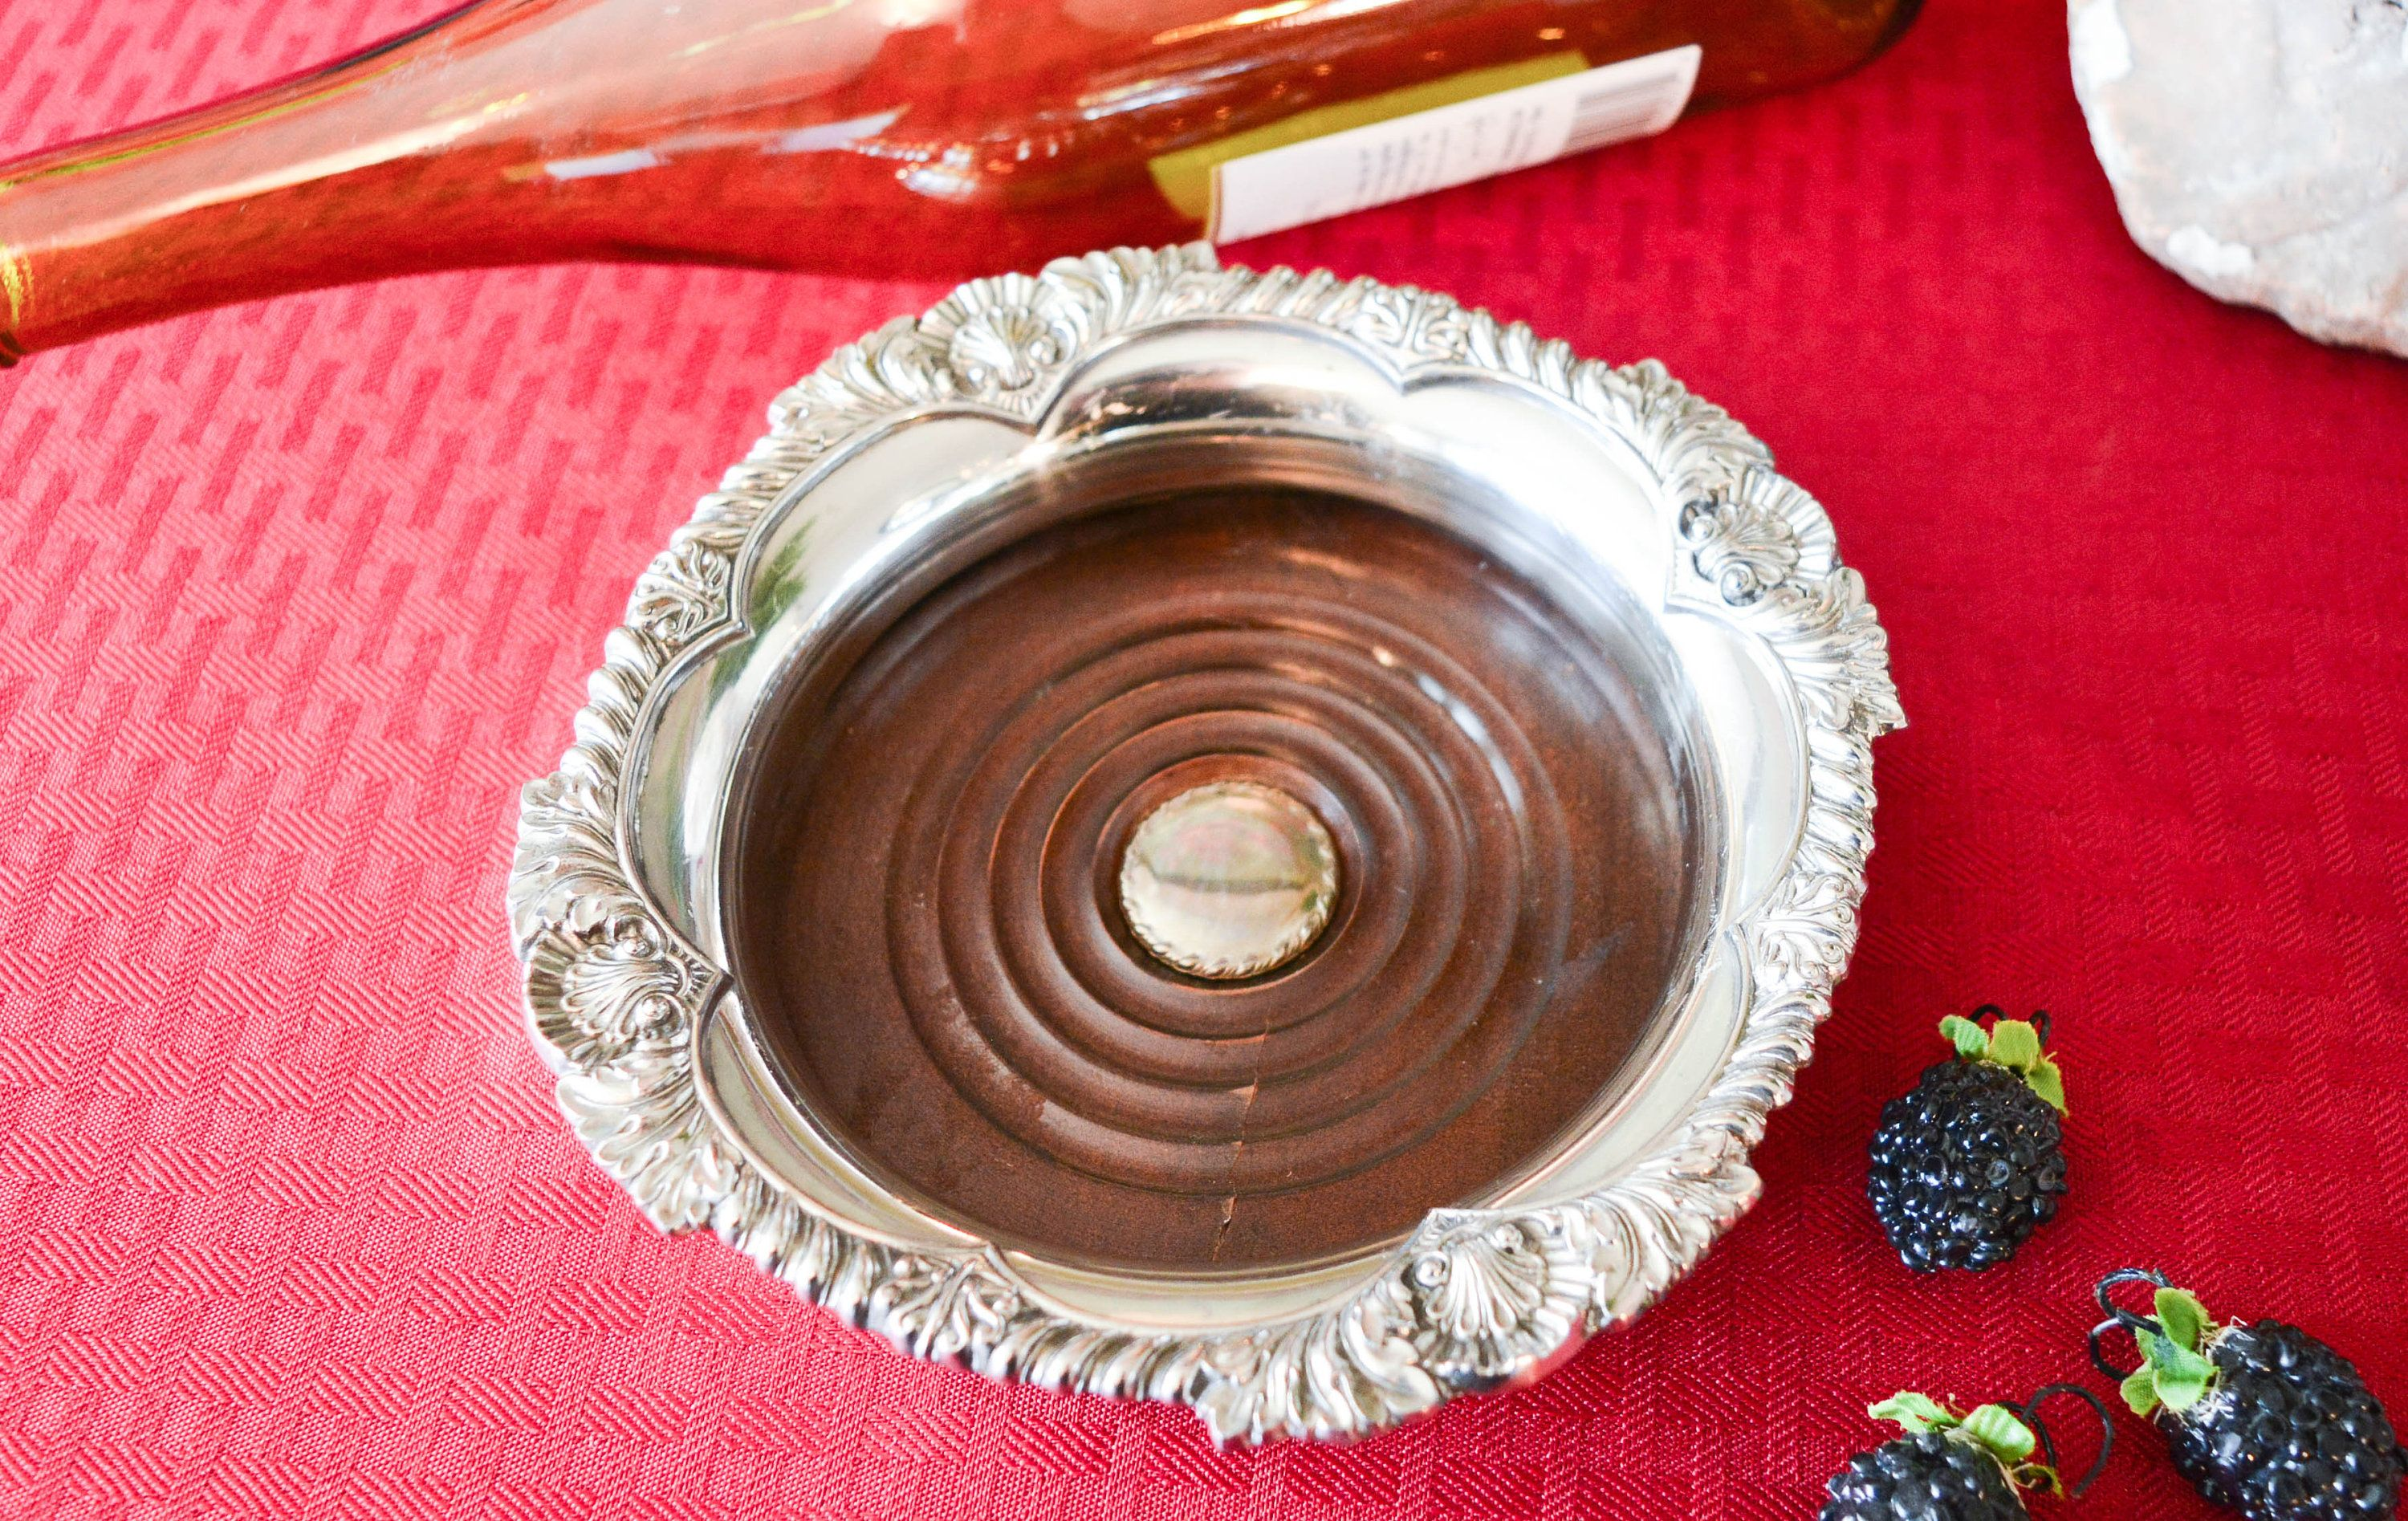 Corbell Silver Plate Bottle Coaster With Wooden Base Shell Etsy In 2020 Silver Coasters Silver Plate Coasters